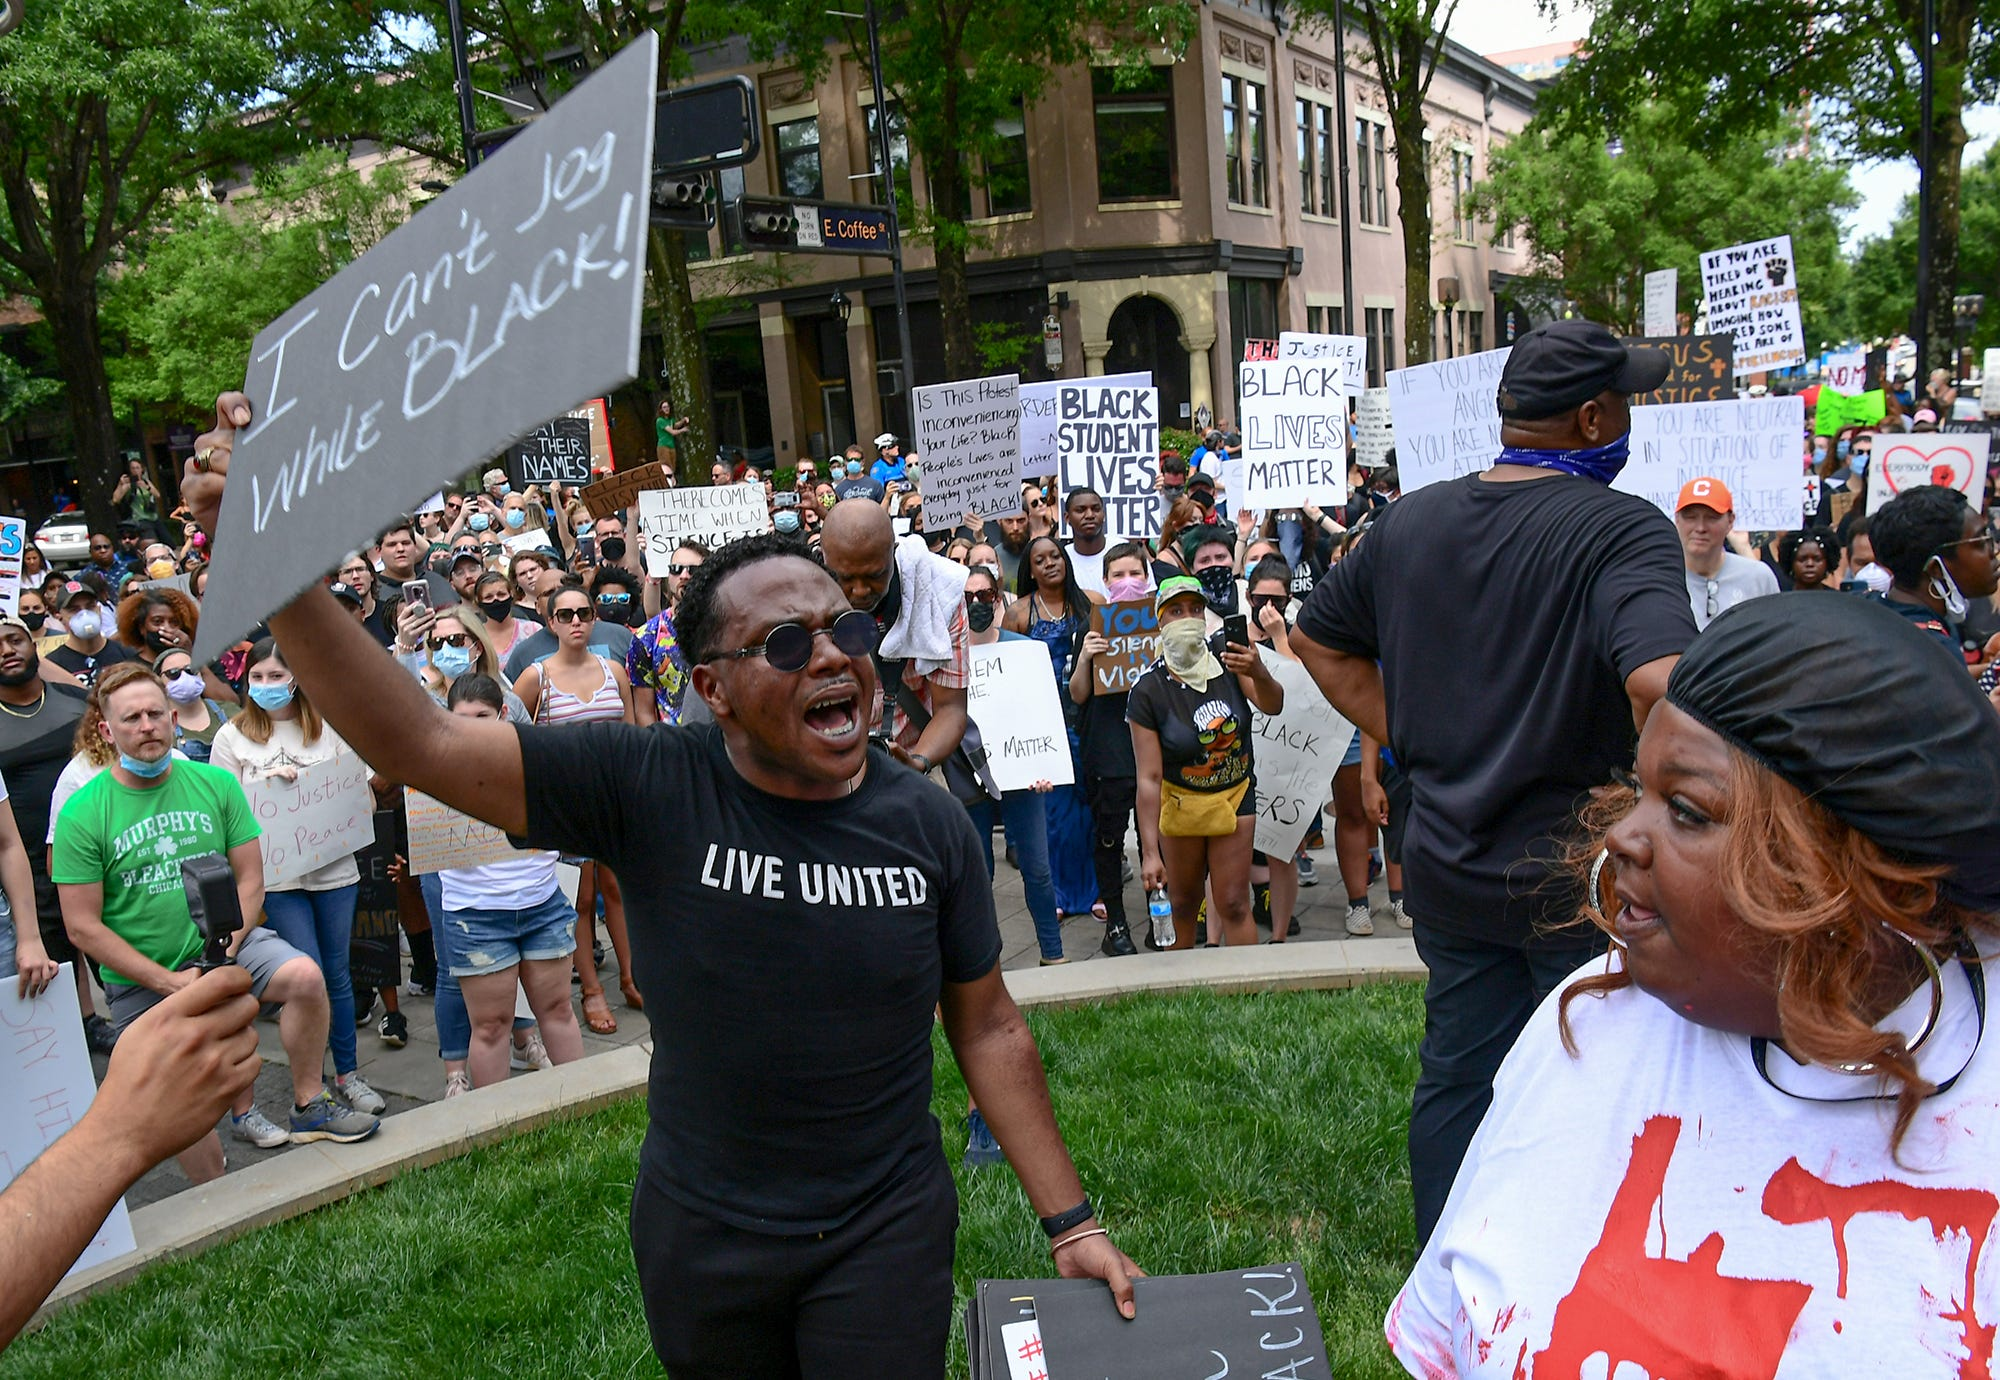 Jay Curenton of Greenville leads a chant during a protest remembering George Floyd at Falls Park in Greenville Sunday, May  31, 2020.